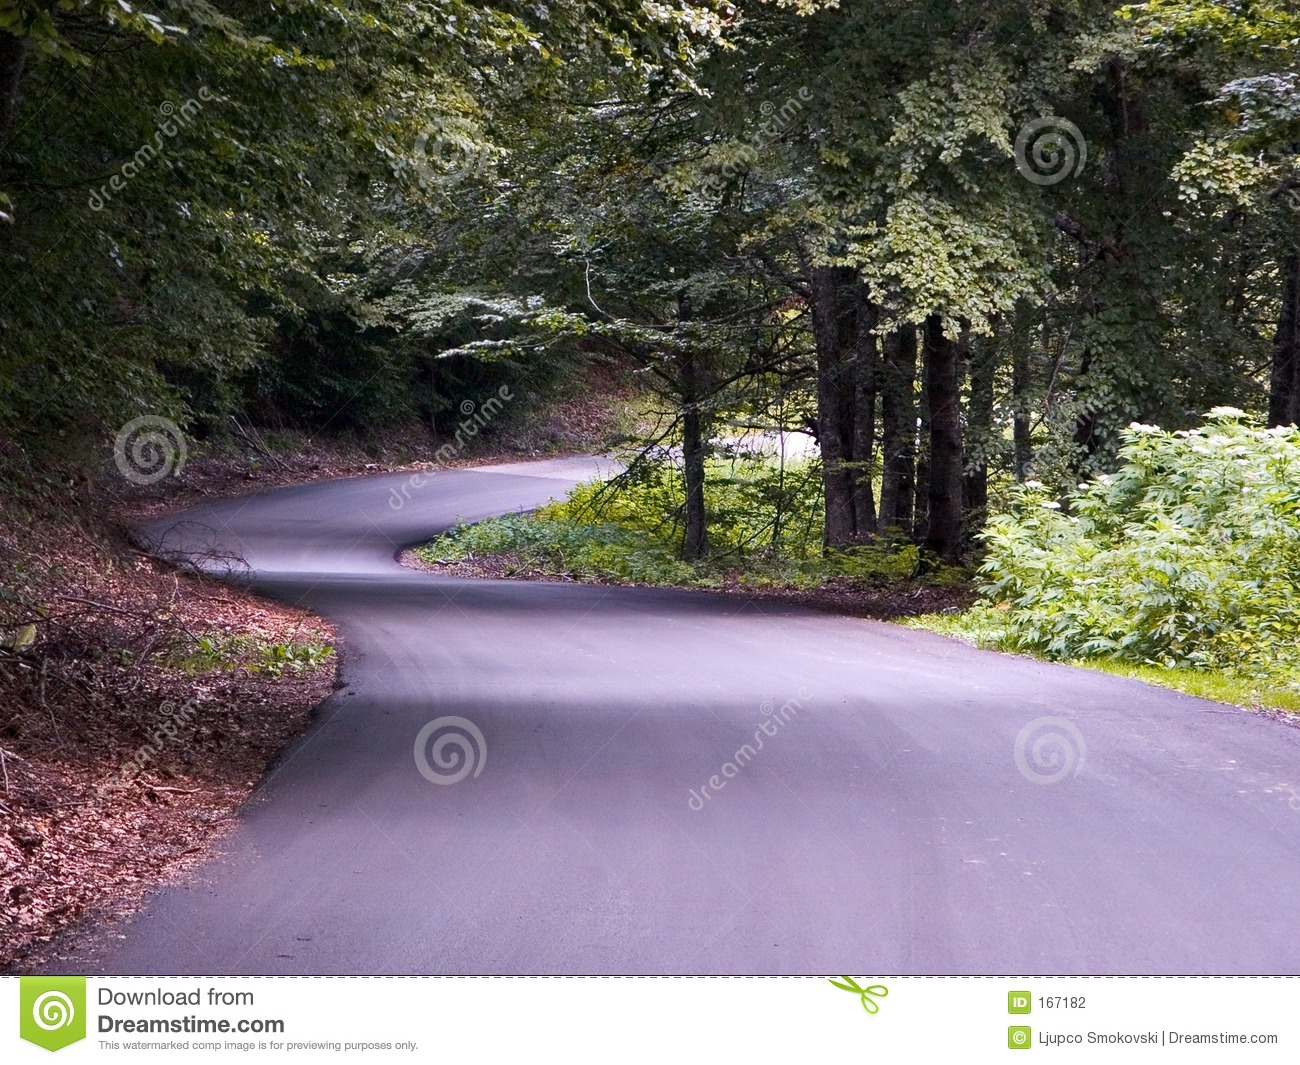 A road in a beautiful forest